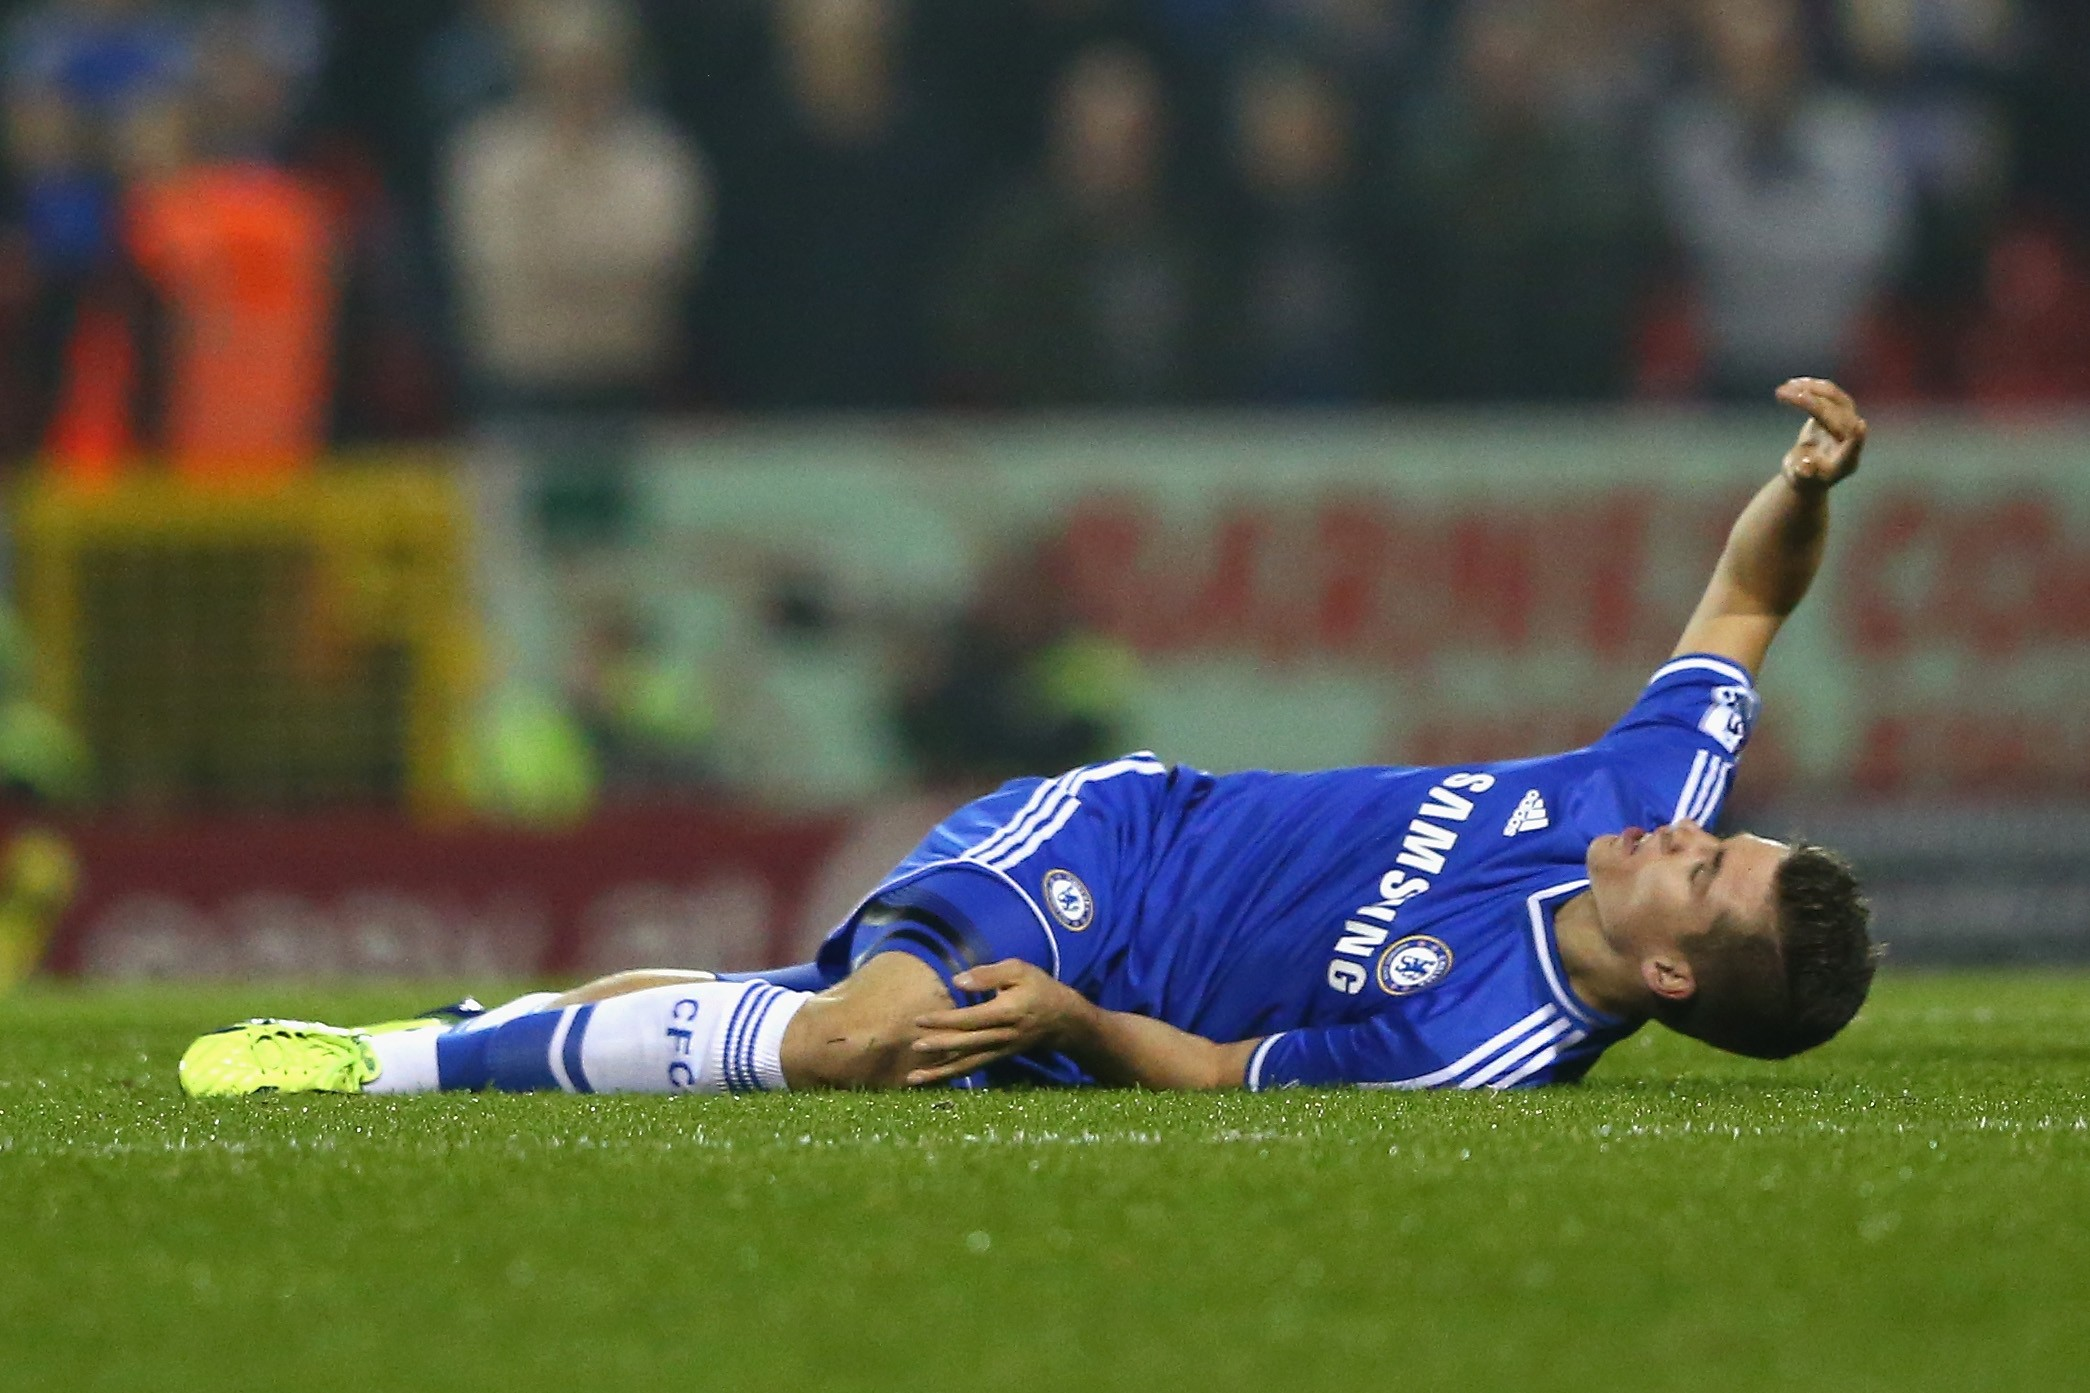 Swindon-Town-v-Chelsea-Capital-One-Cup-Third-Round-1580163390.jpg